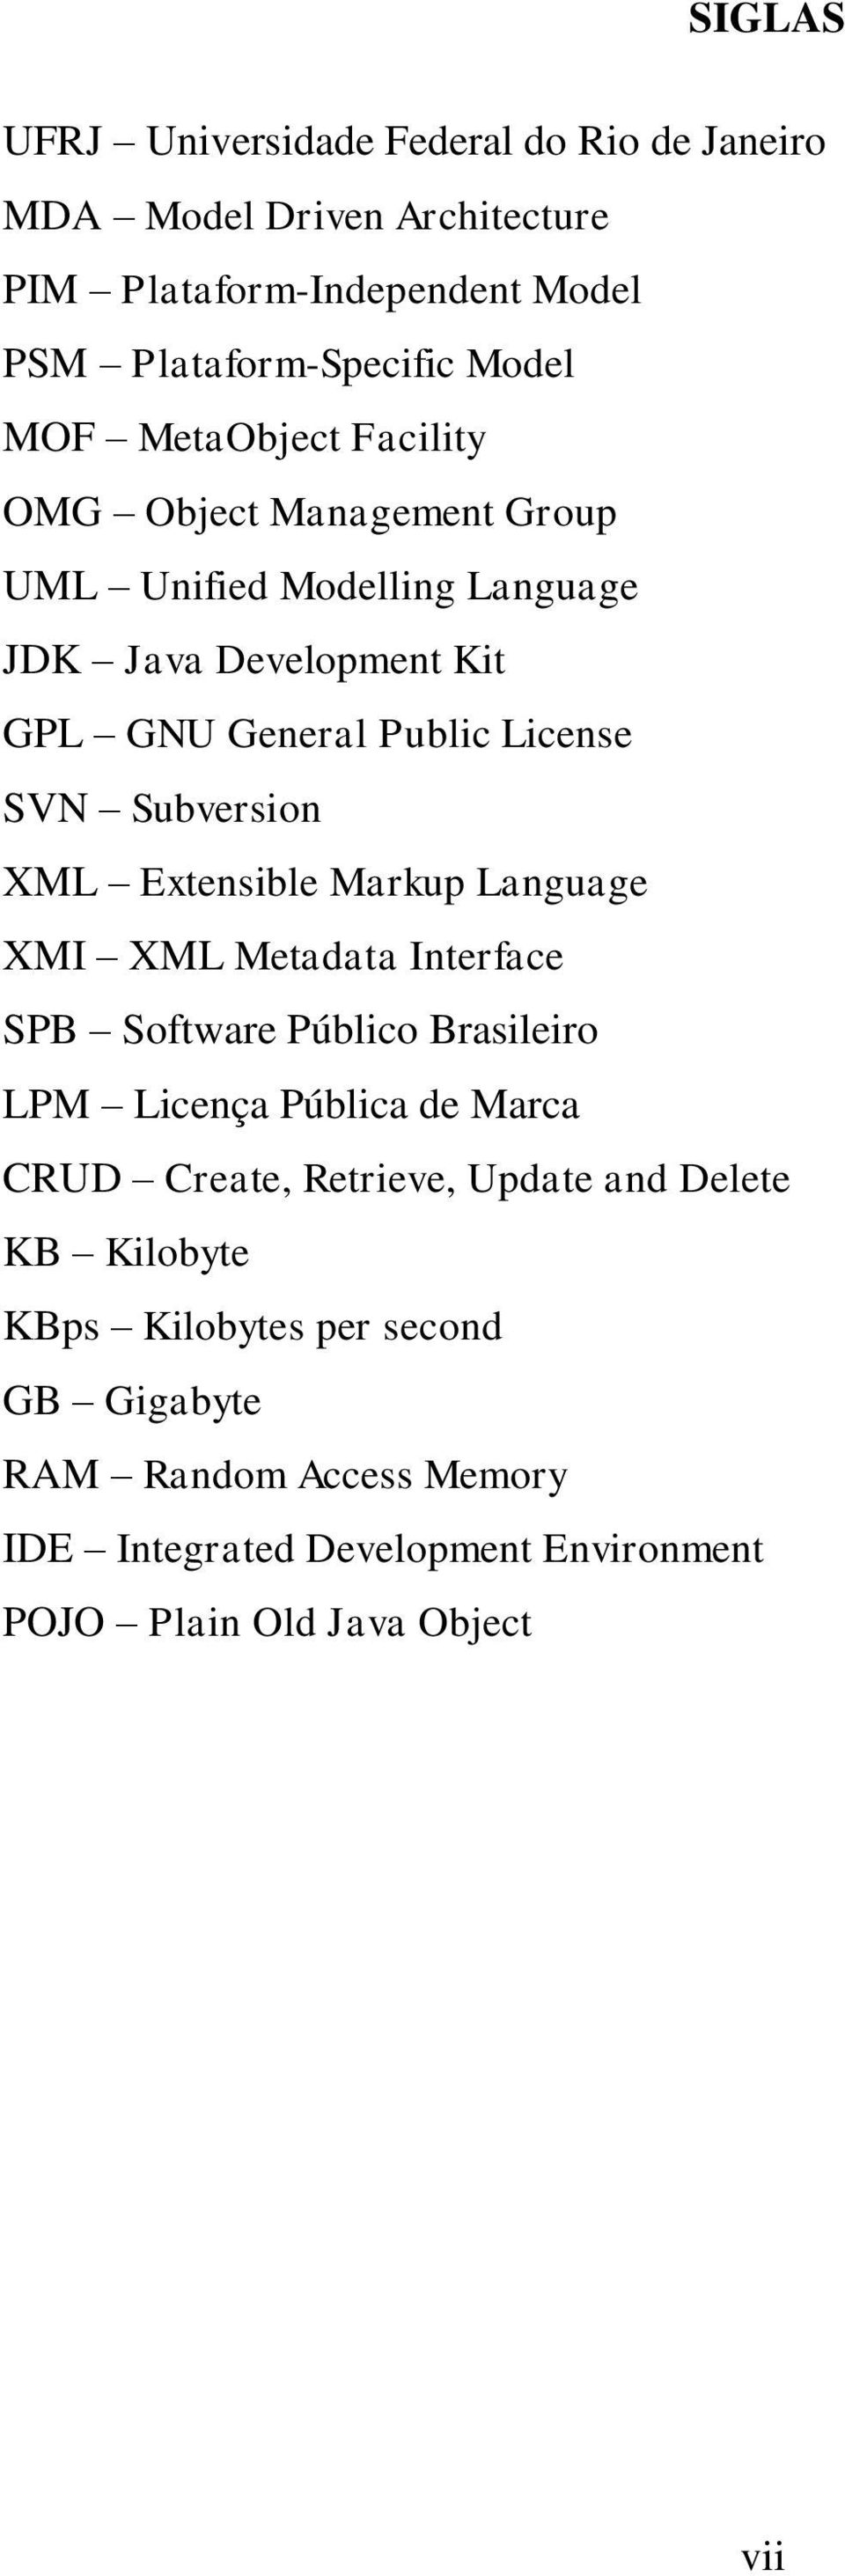 XML Extensible Markup Language XMI XML Metadata Interface SPB Software Público Brasileiro LPM Licença Pública de Marca CRUD Create, Retrieve, Update